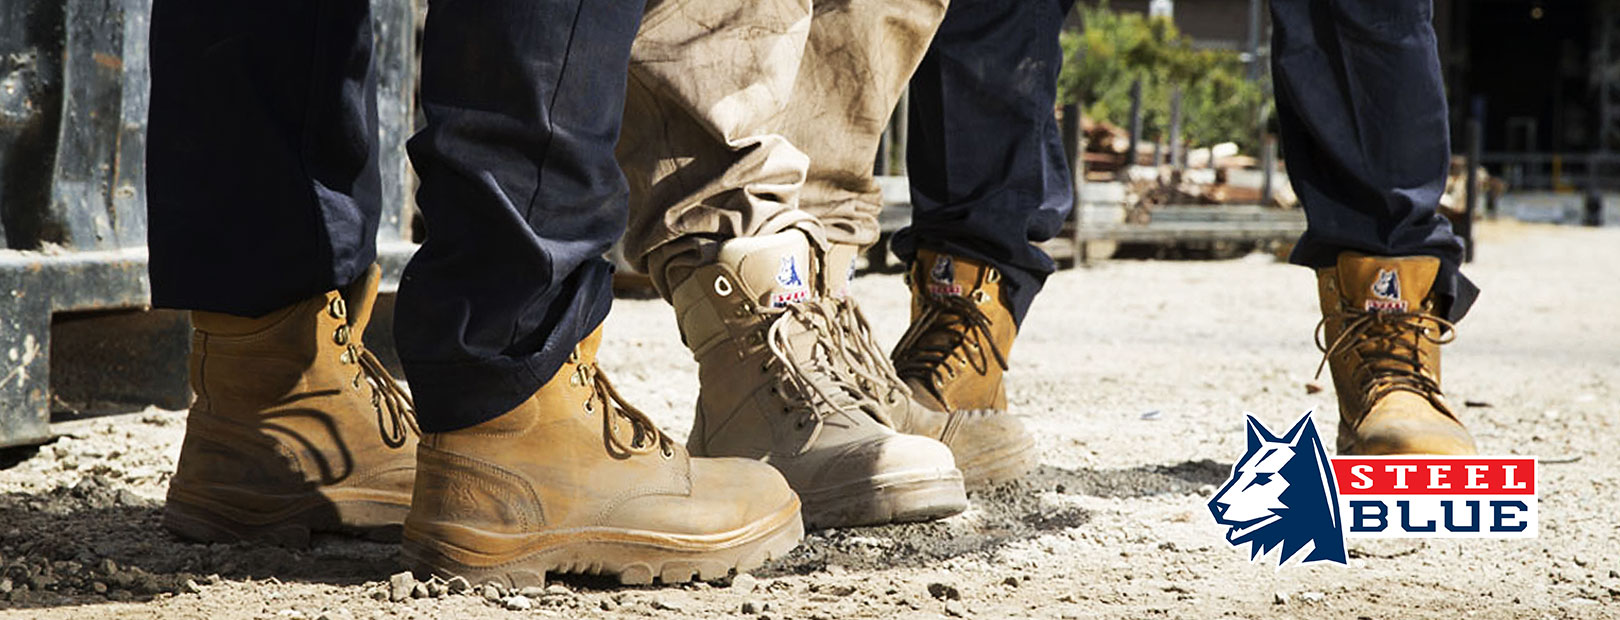 Steel Blue Work Boots and Footwear at RSEA Safety NZ - The Safety Experts